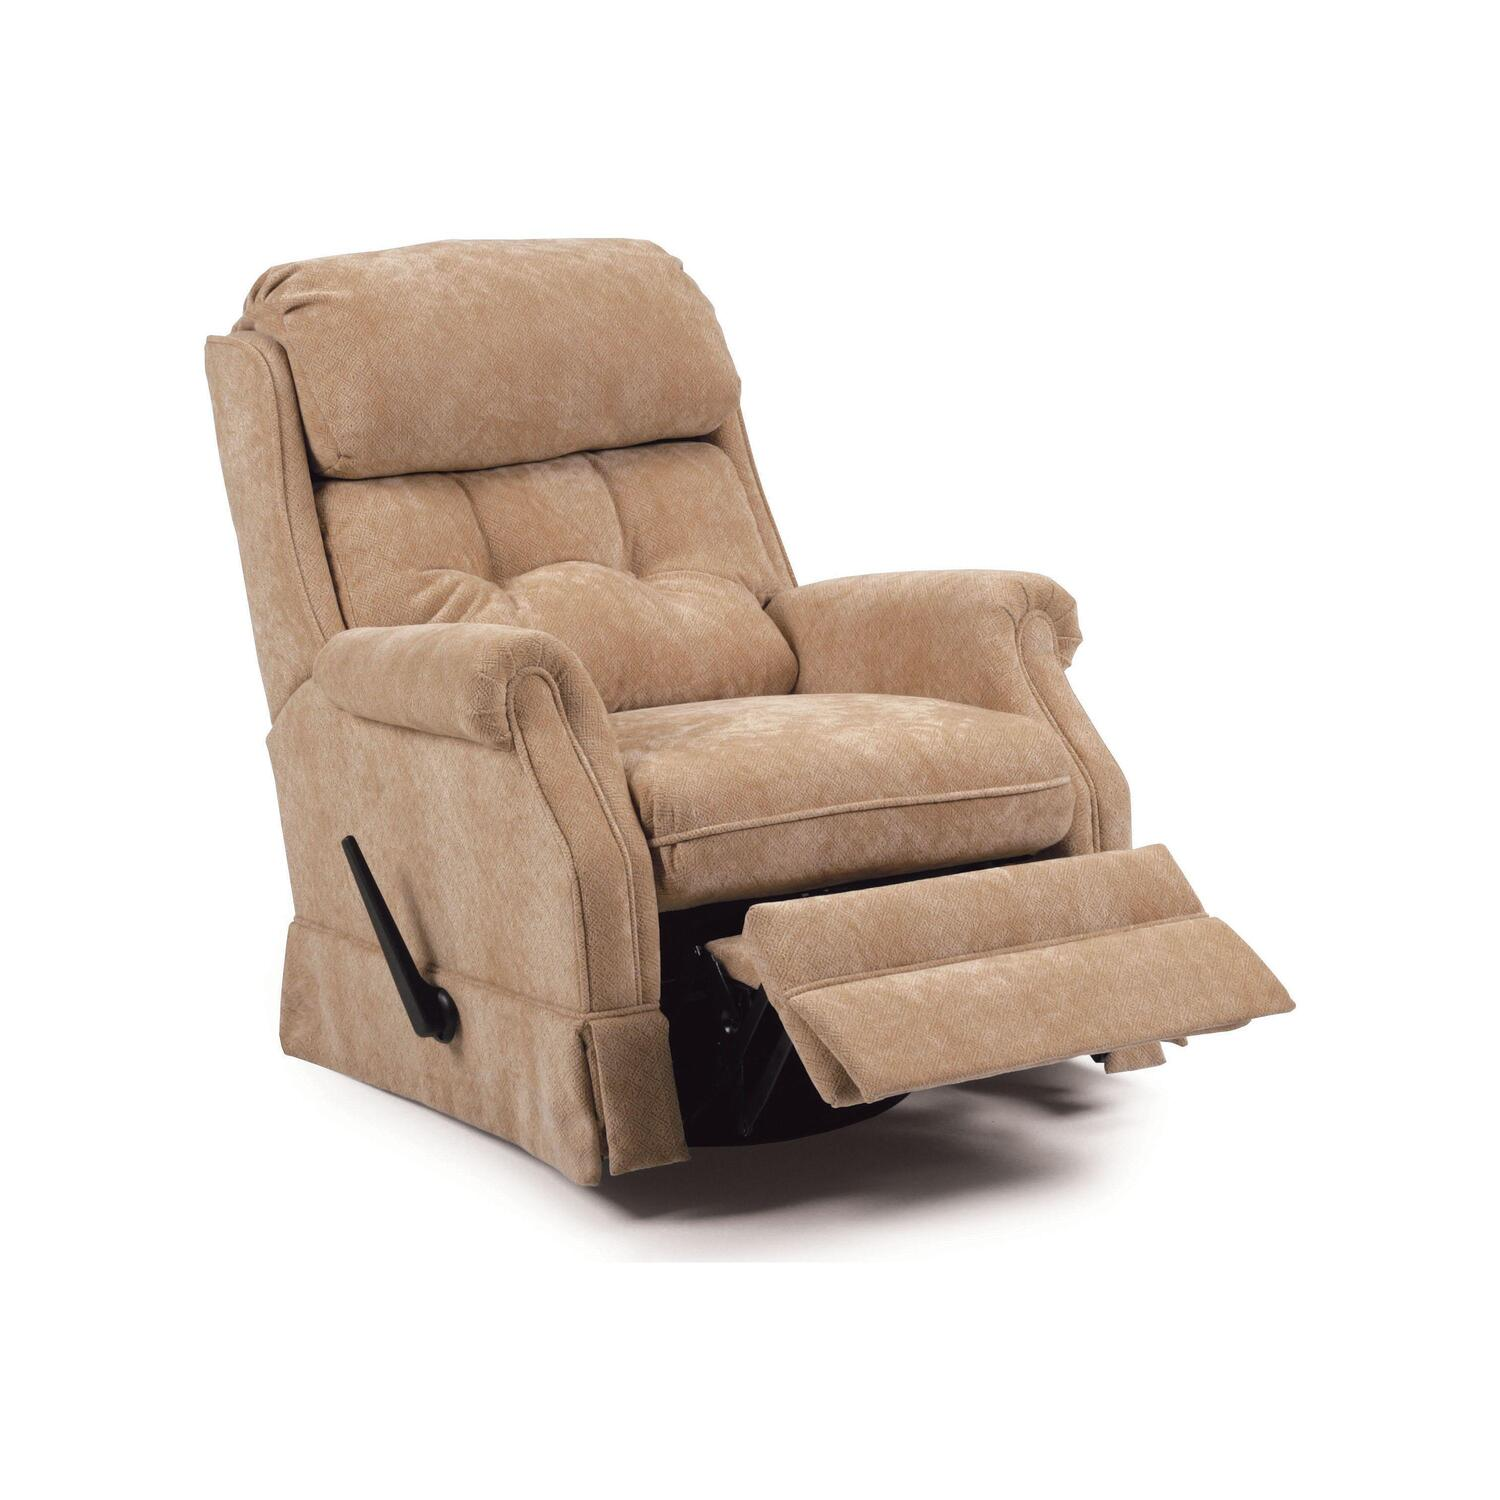 lane carolina swivel glider recliner by oj commerce 668 99